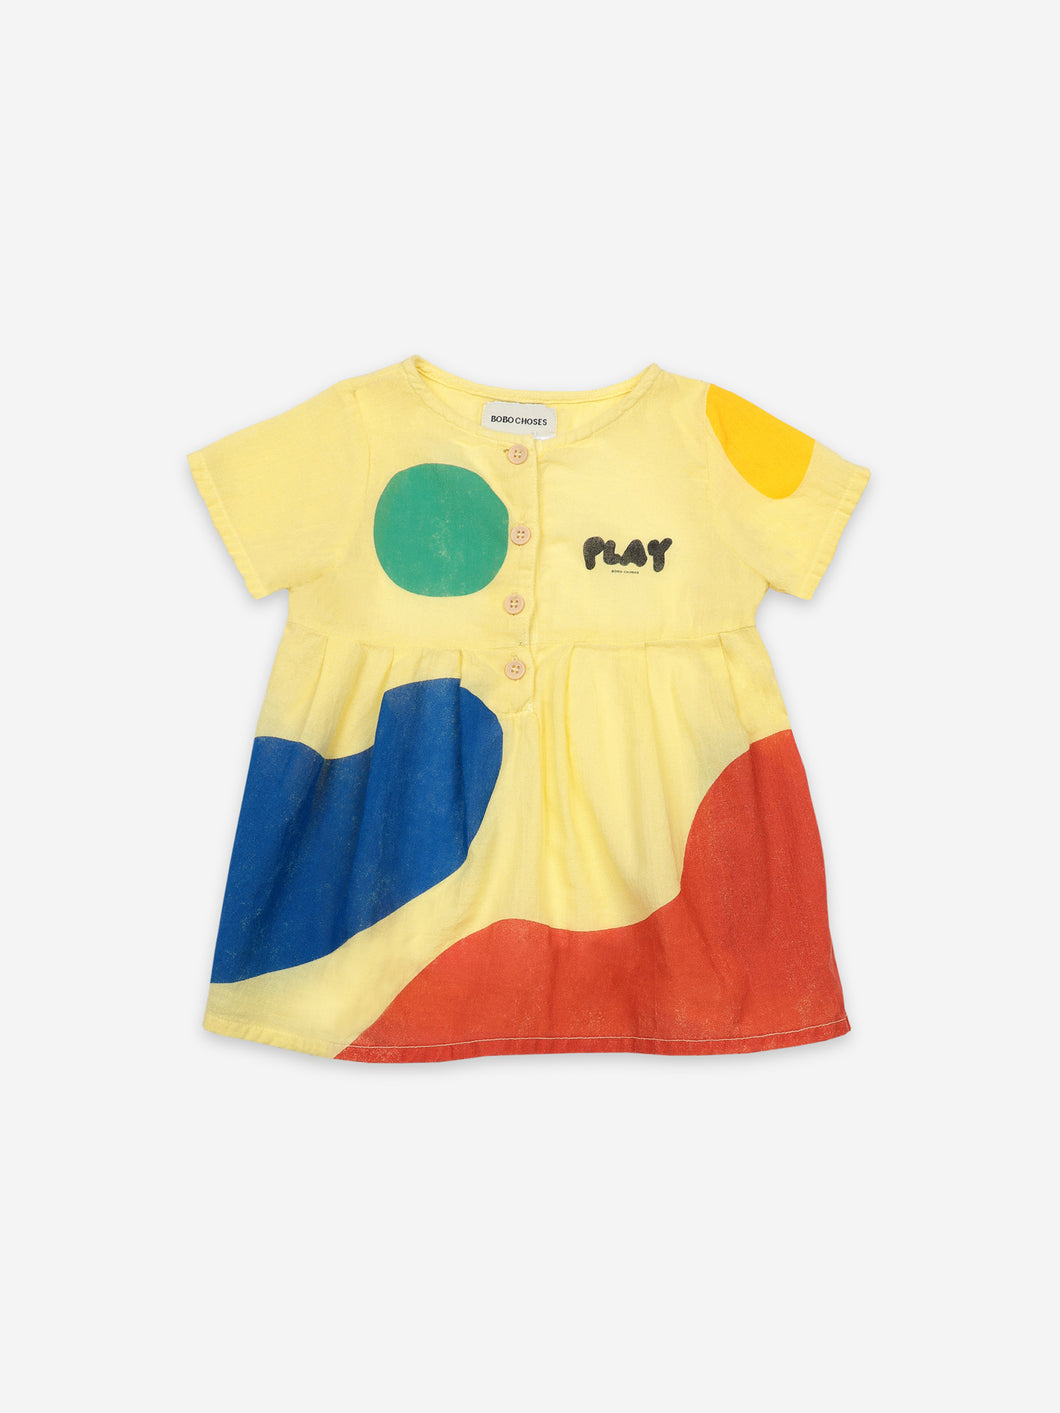 Bobo Choses / Buttoned Dress / Play Landscape